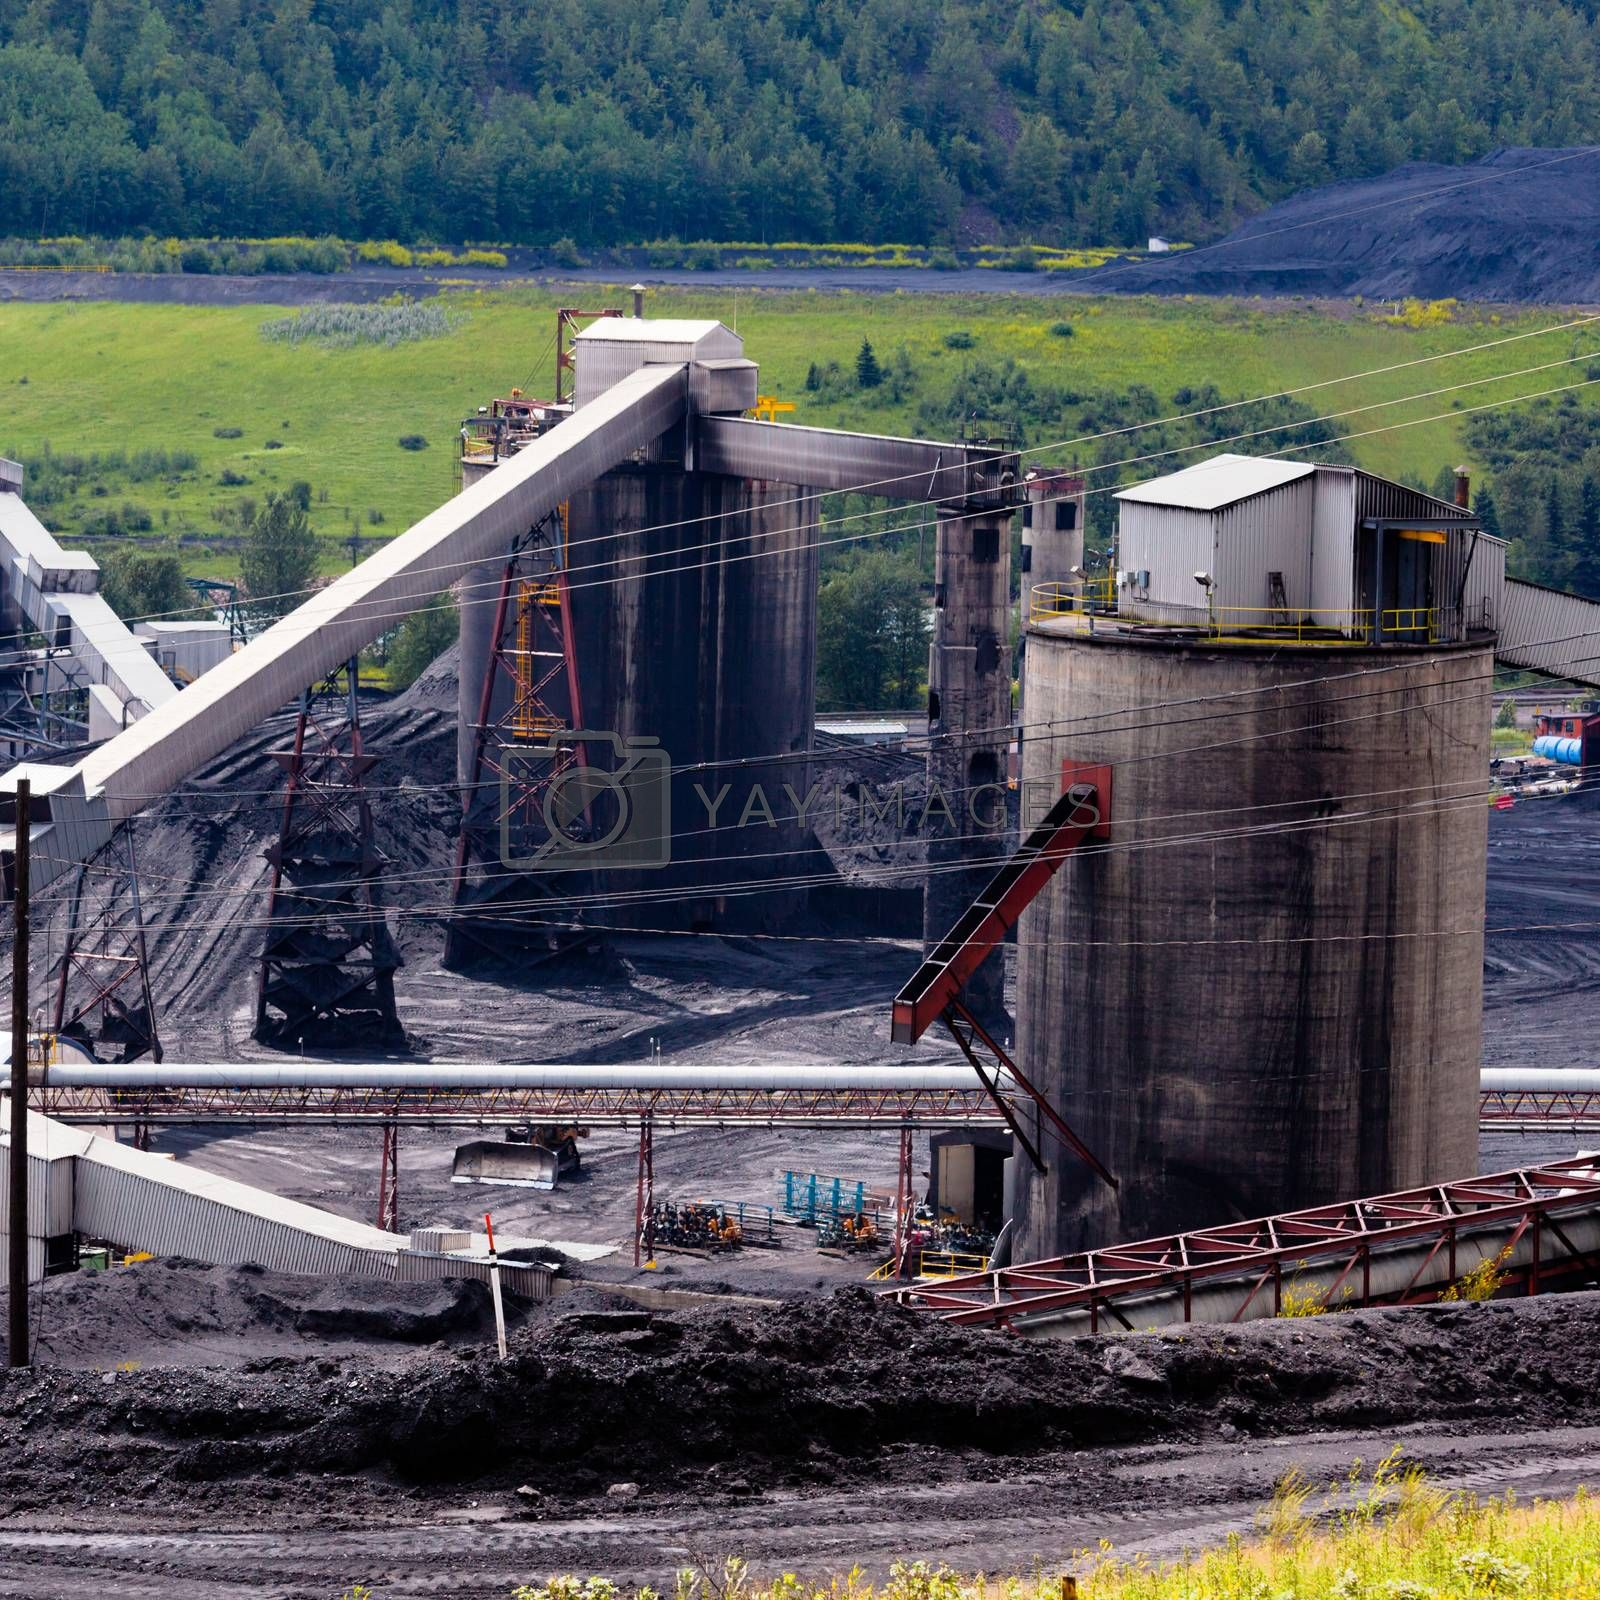 Dirty coal mine structures fossil energy resource by PiLens